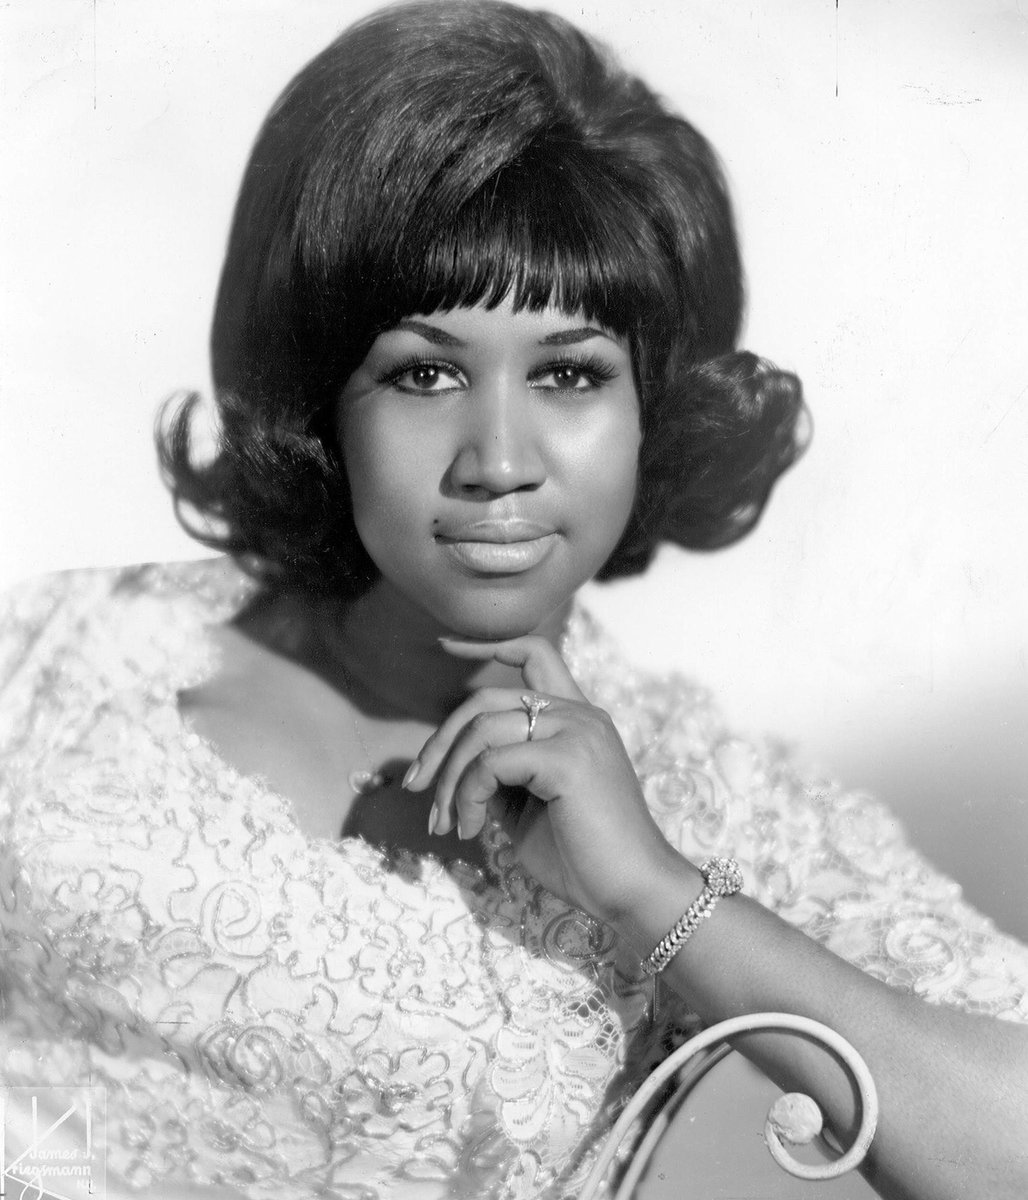 'It really is an honour if I can be inspirational to a younger singer or person. It means I've done my job.' - Aretha Franklin   Thank you for inspiring an endless amount of people. I will never stop appreciating, loving and learning from your incredible gift #QueenOfSoul